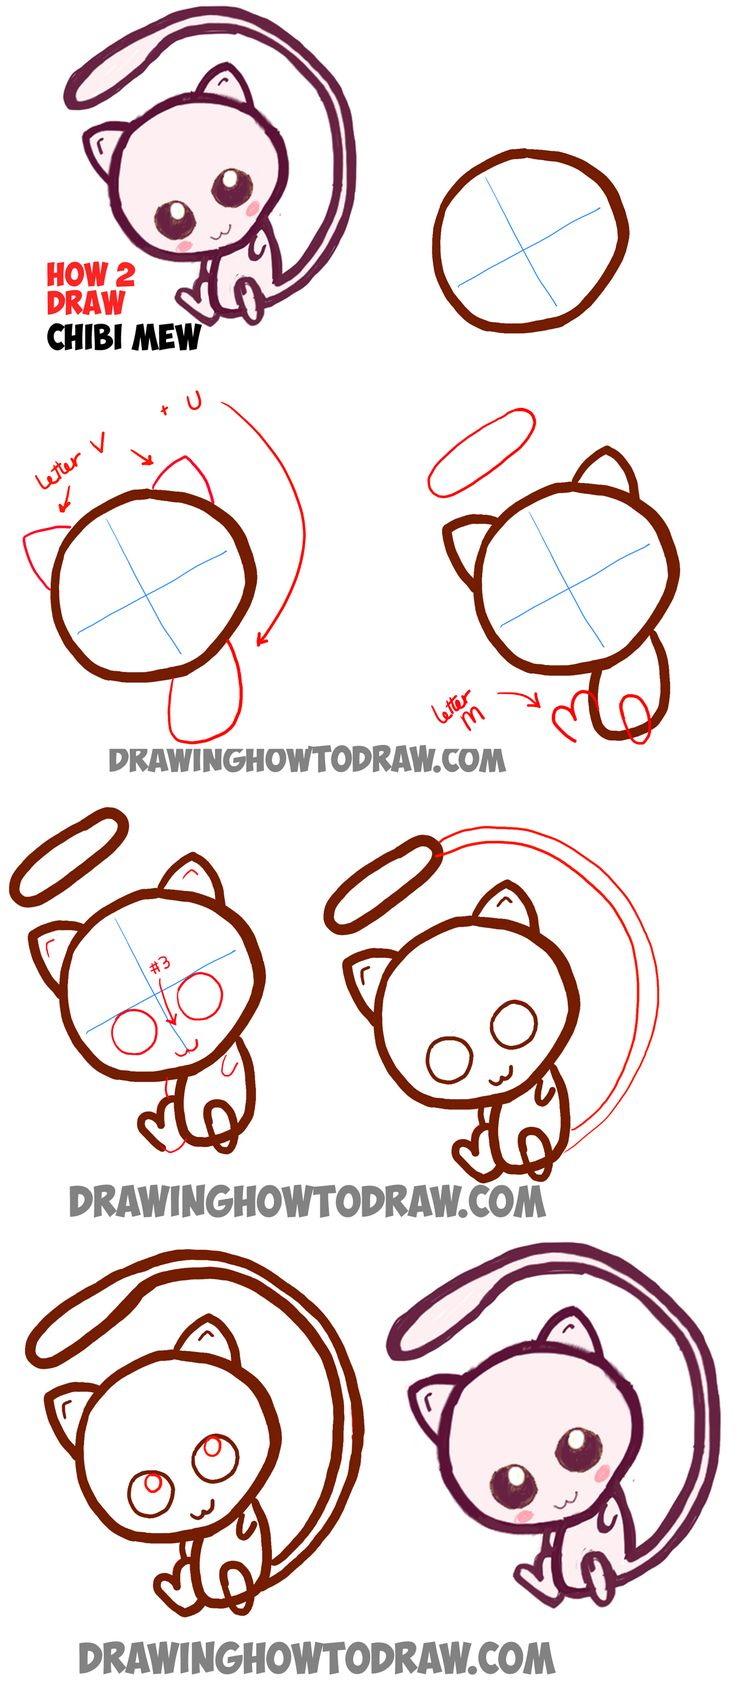 Learn How to Draw Cute Baby Chibi Mew from Pokemon Simle Steps Drawing Lesson